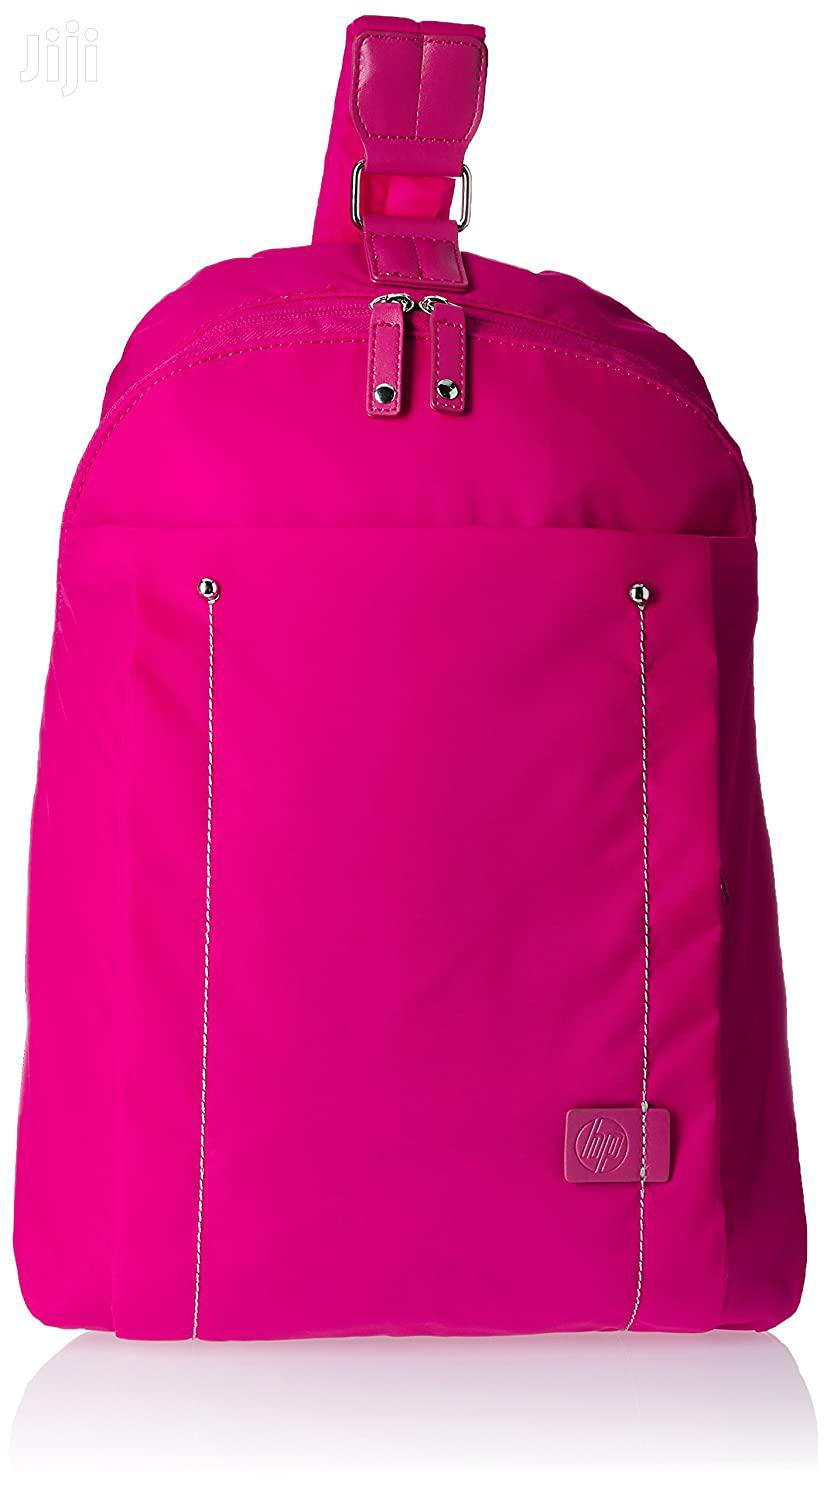 HP 14-inch Laptop Sling Bag Pink Black And Purple